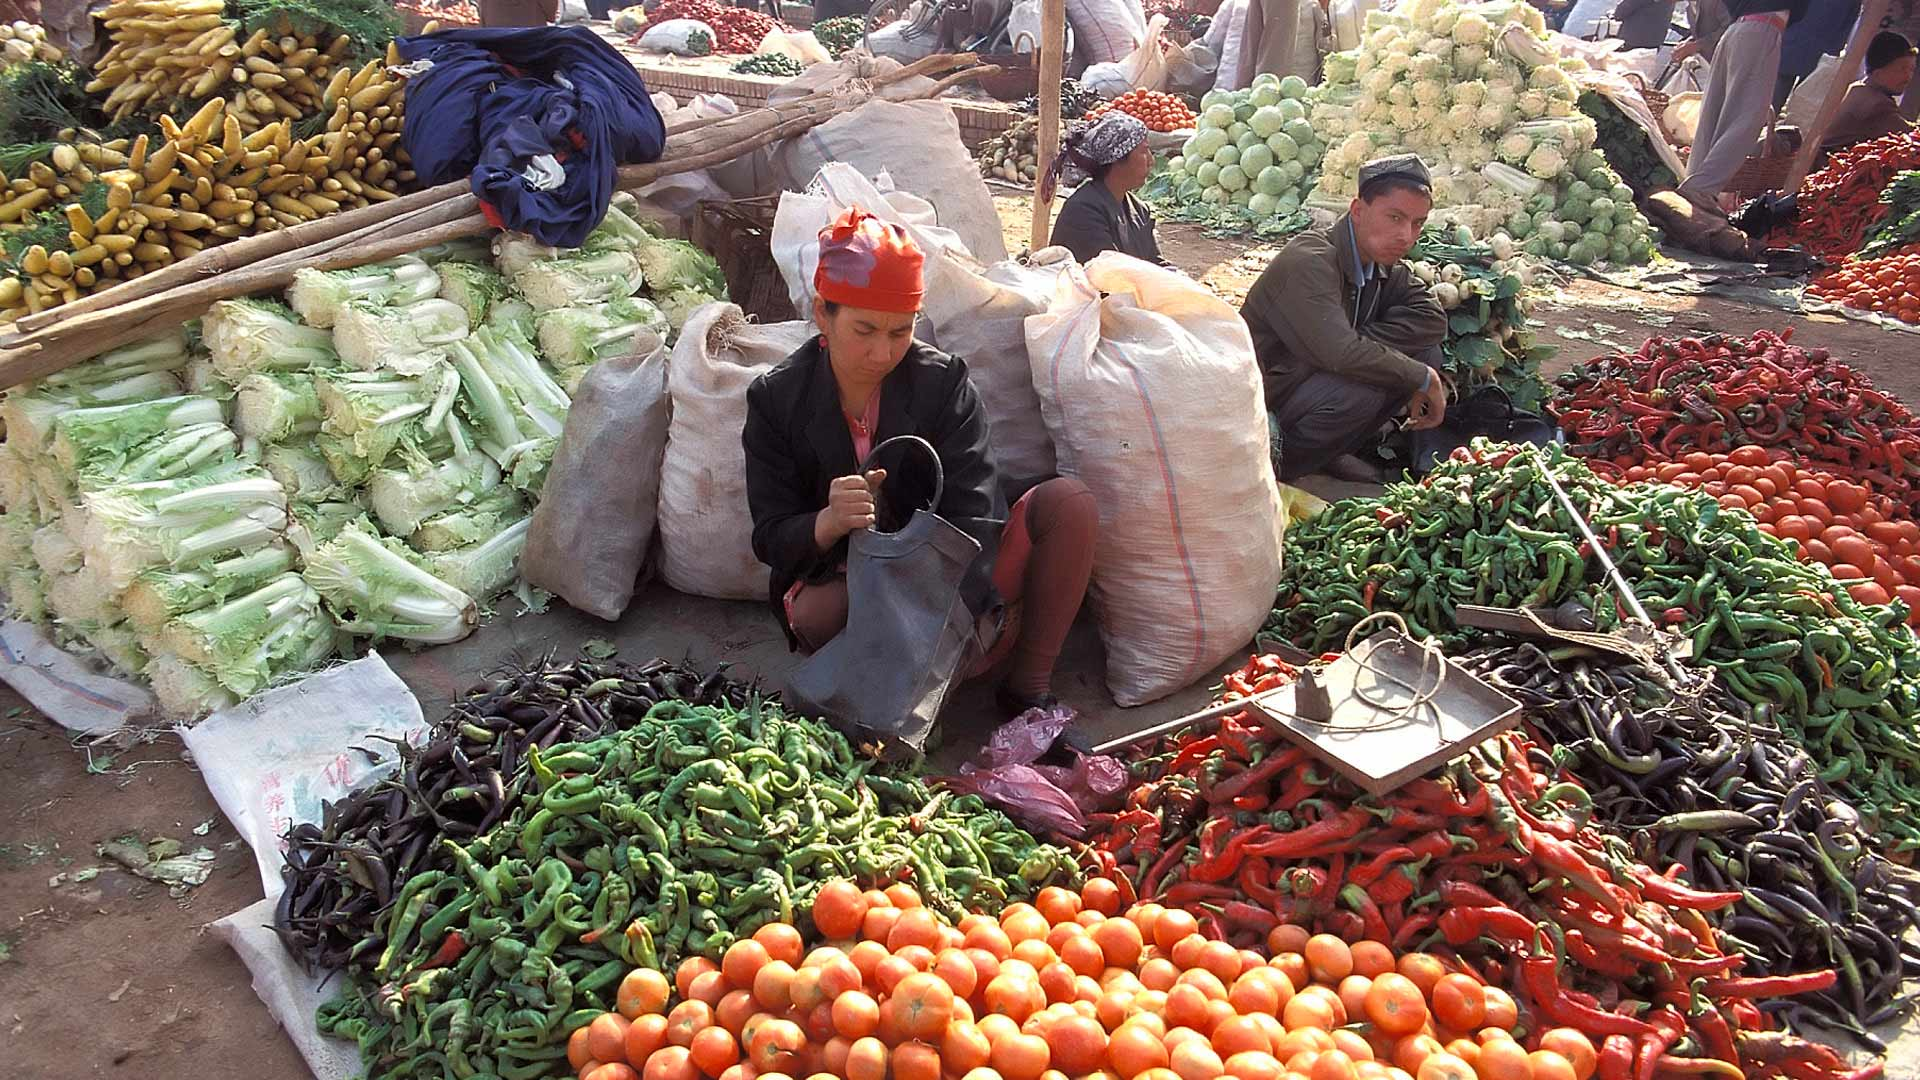 street vendors selling vegetables and herbs in the market